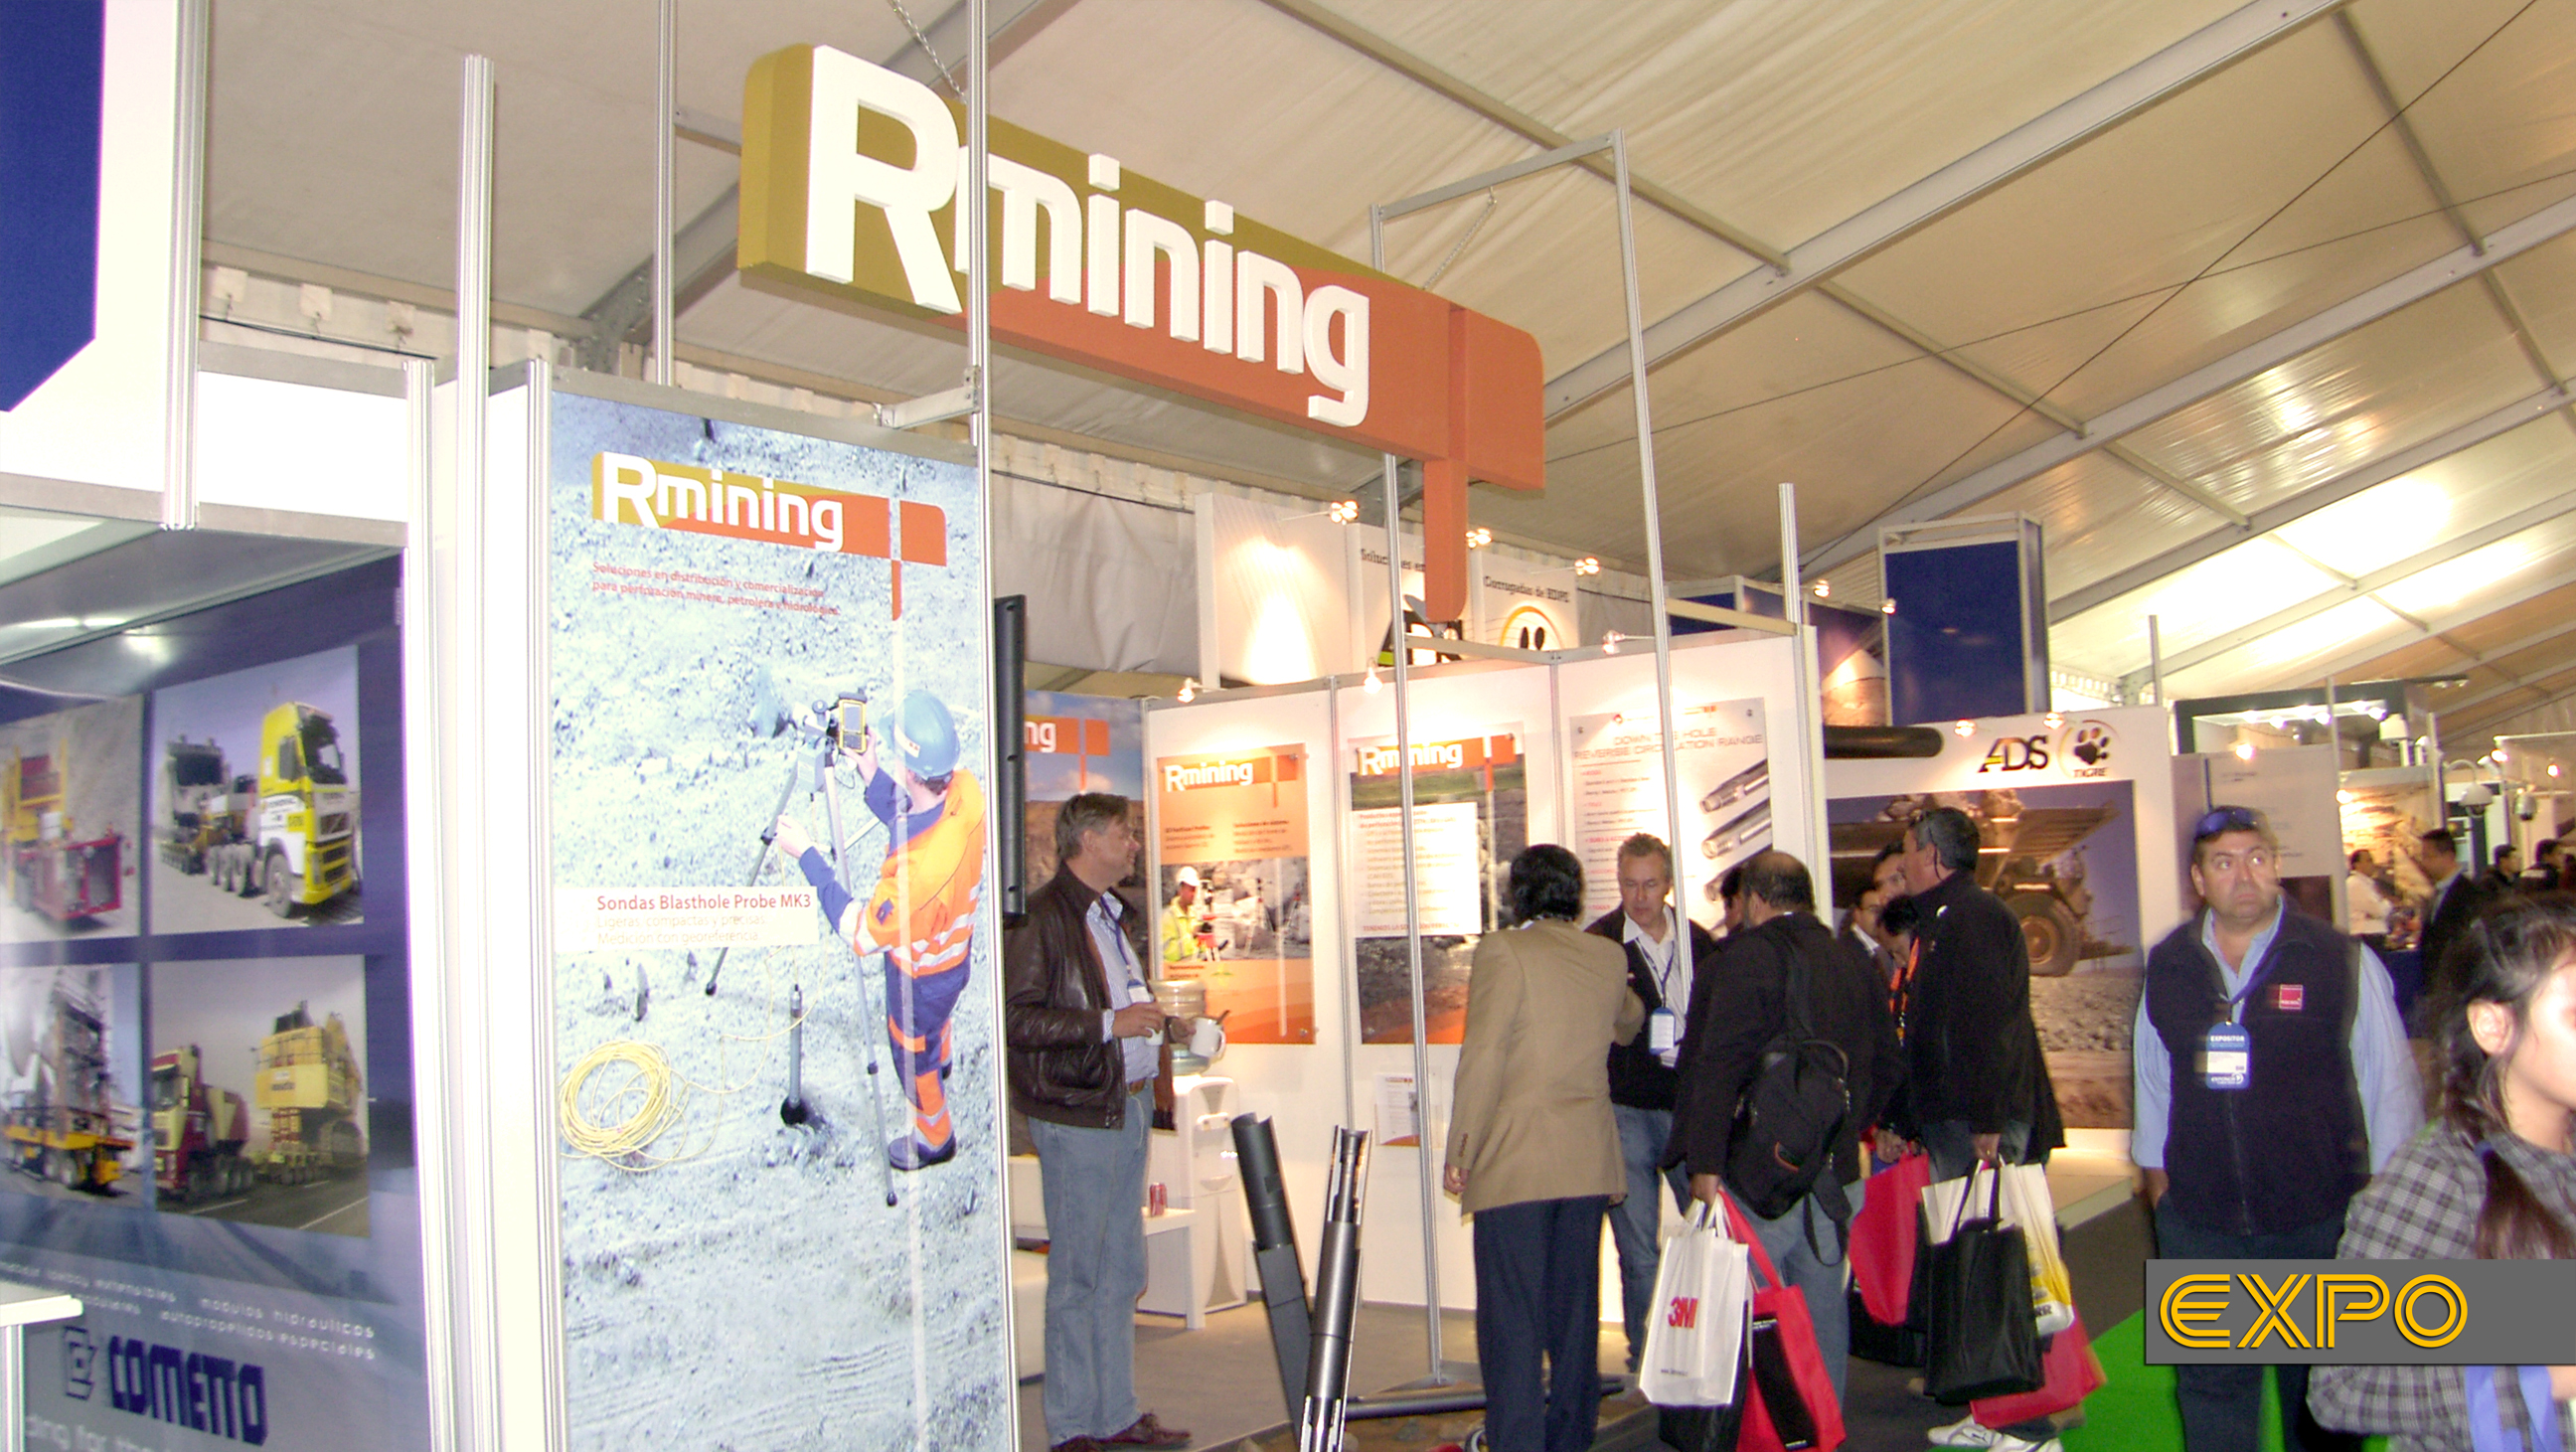 Rmining - Exponor 2013